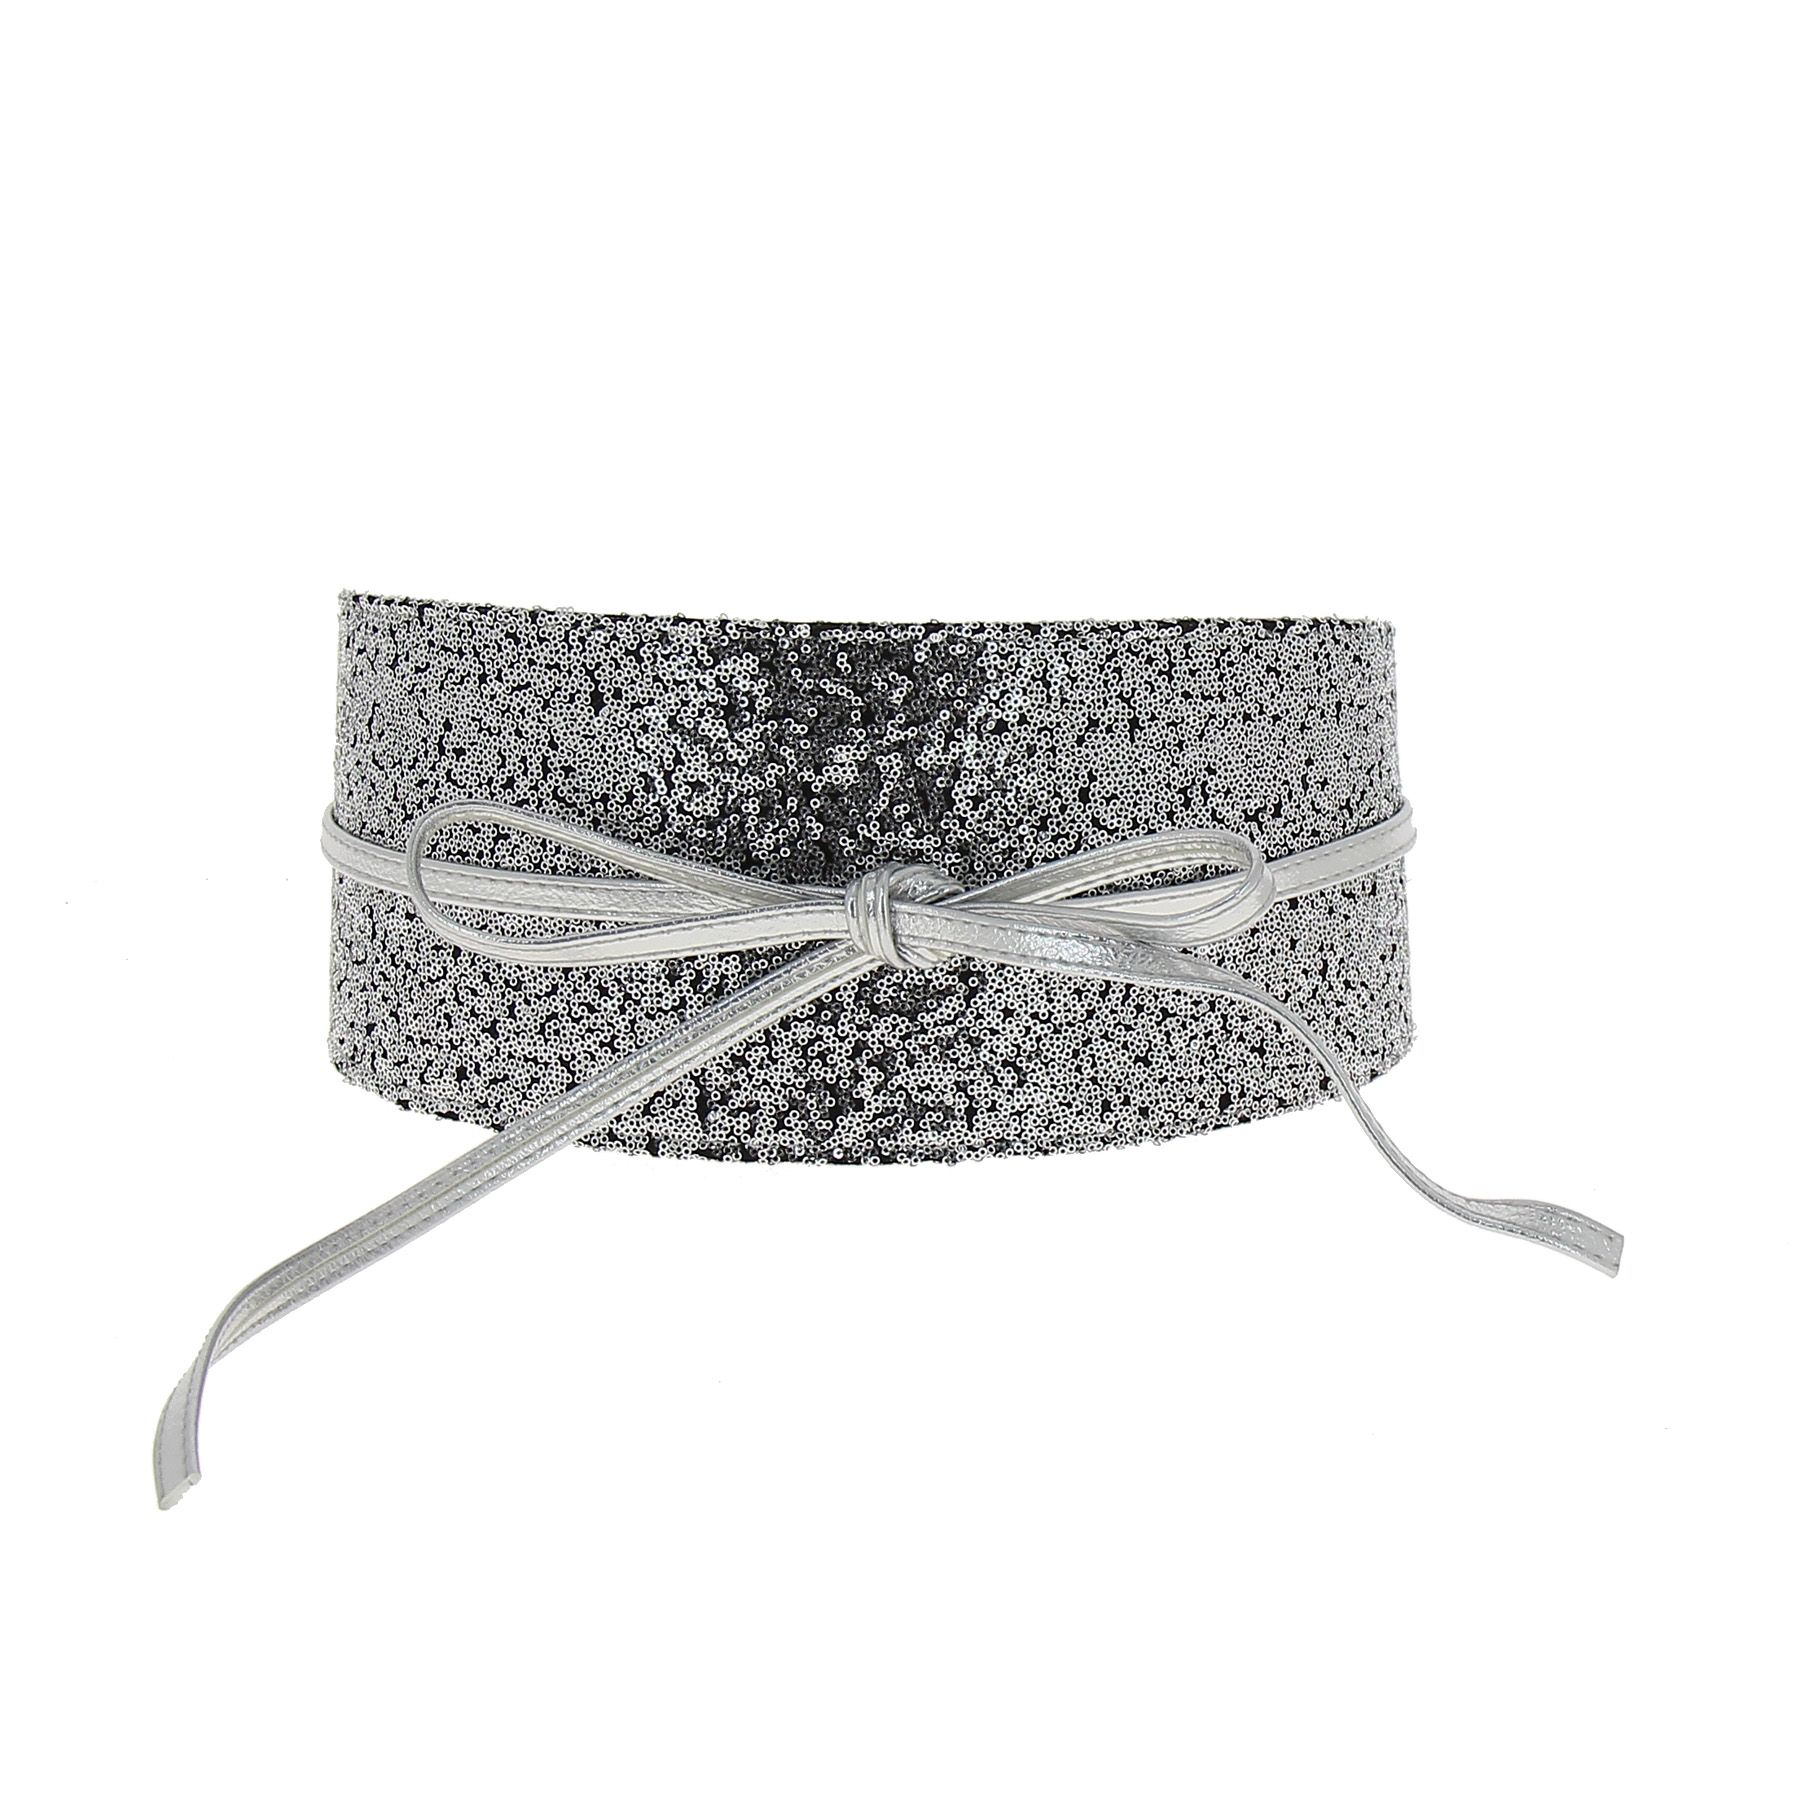 Ceinture Obi à sequins ELEN. Loading zoom 714a9b9be58